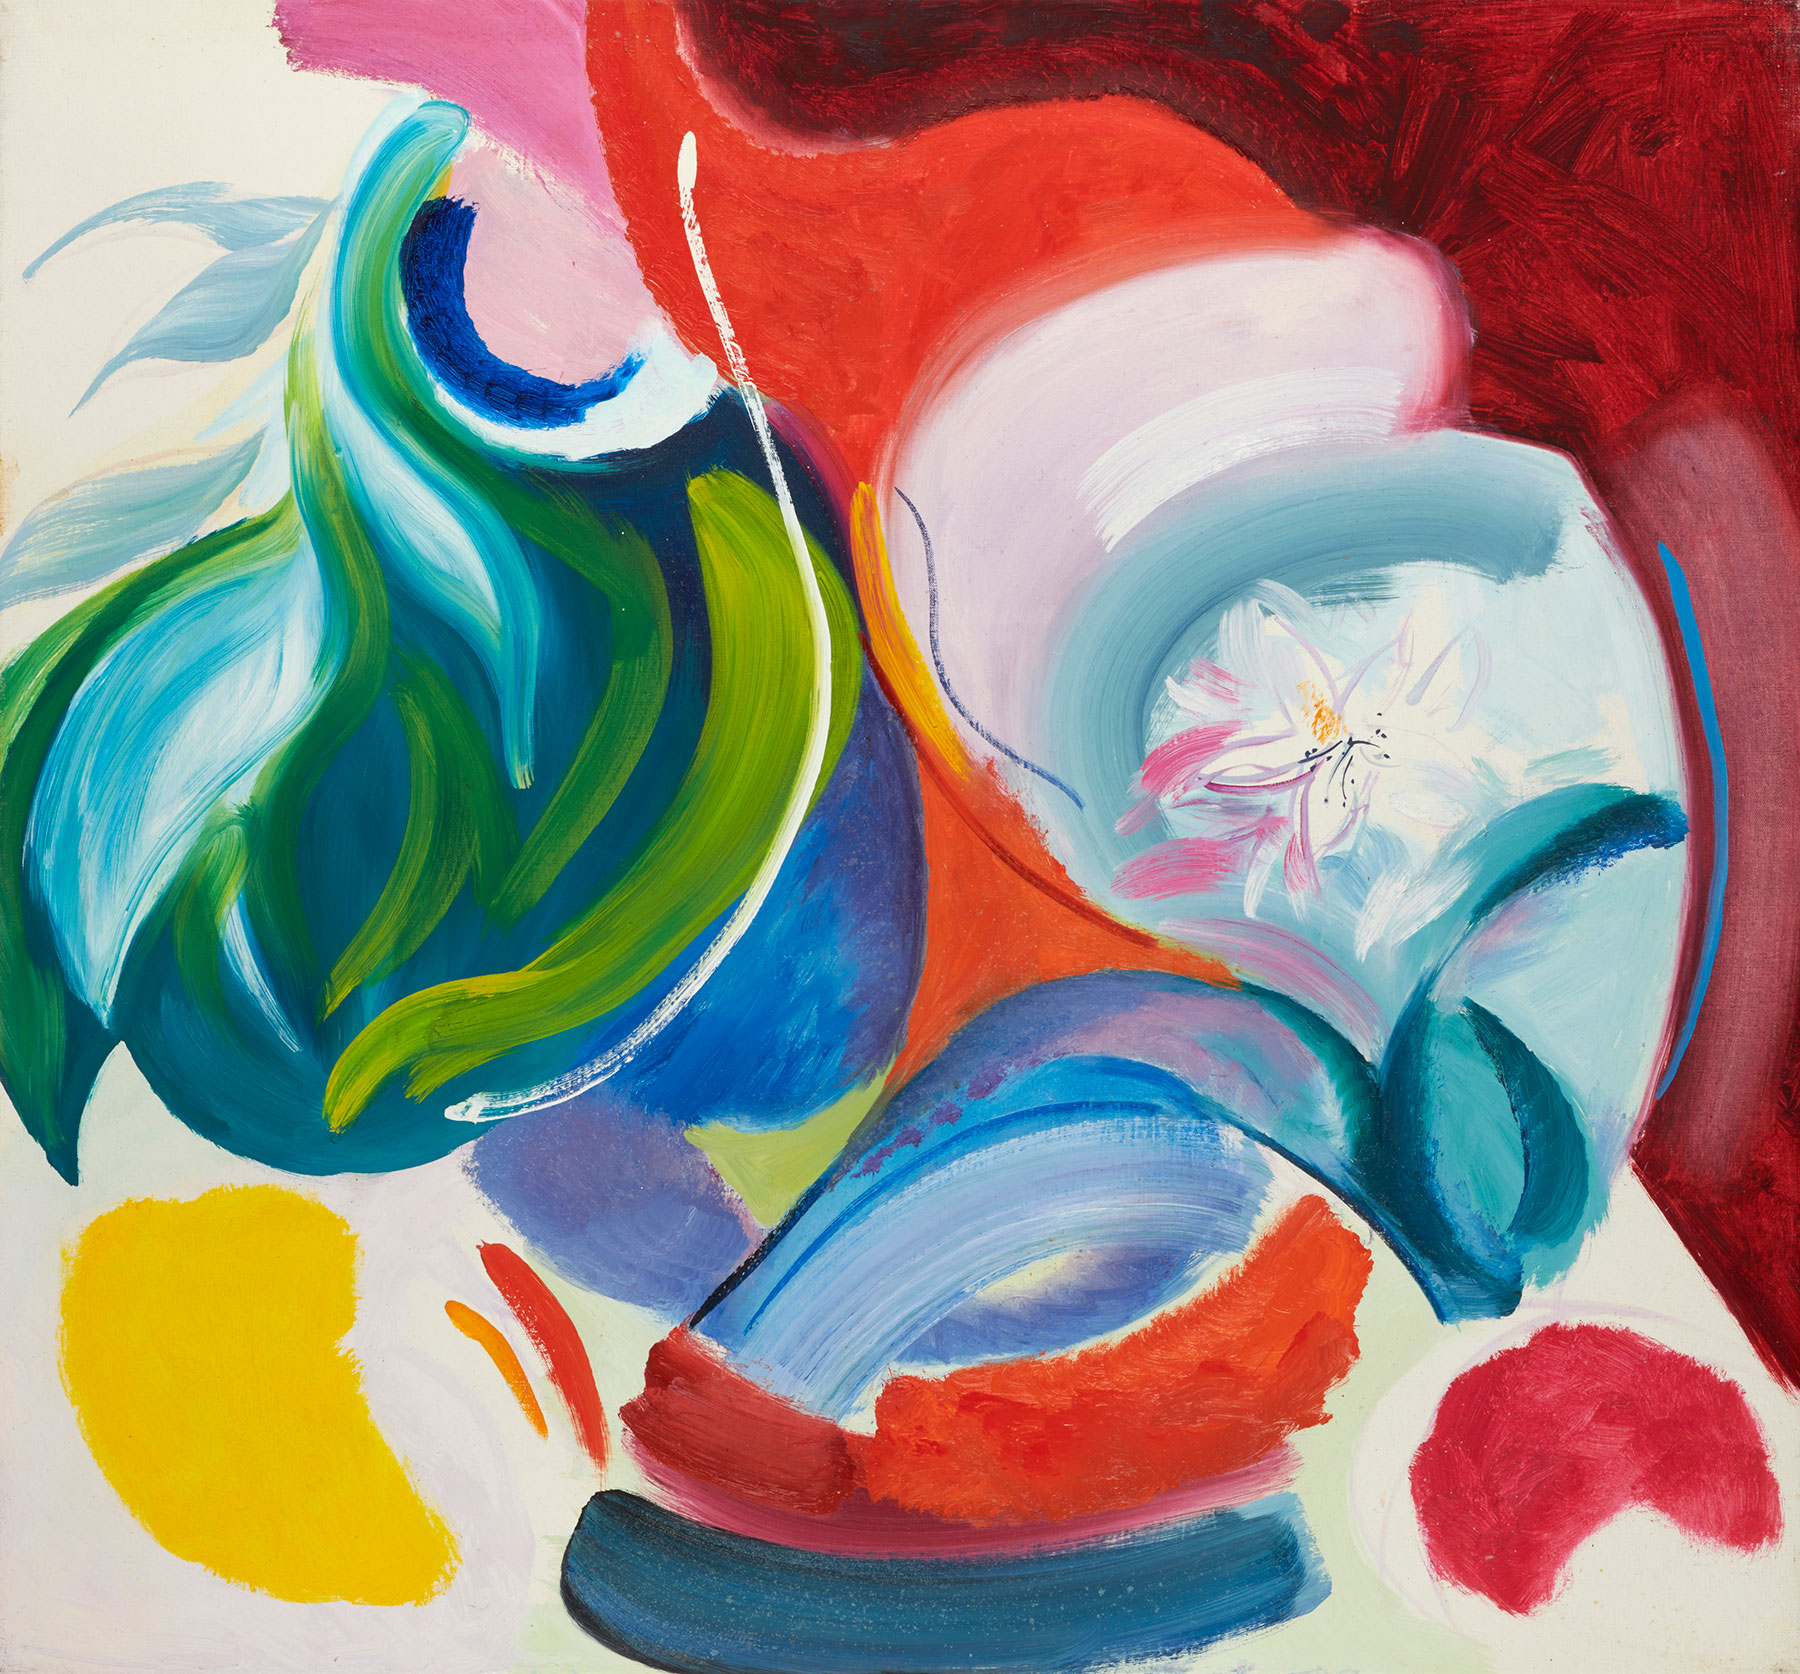 Leafy Shades, 1967, 71 x 76 cm, oil on canvas